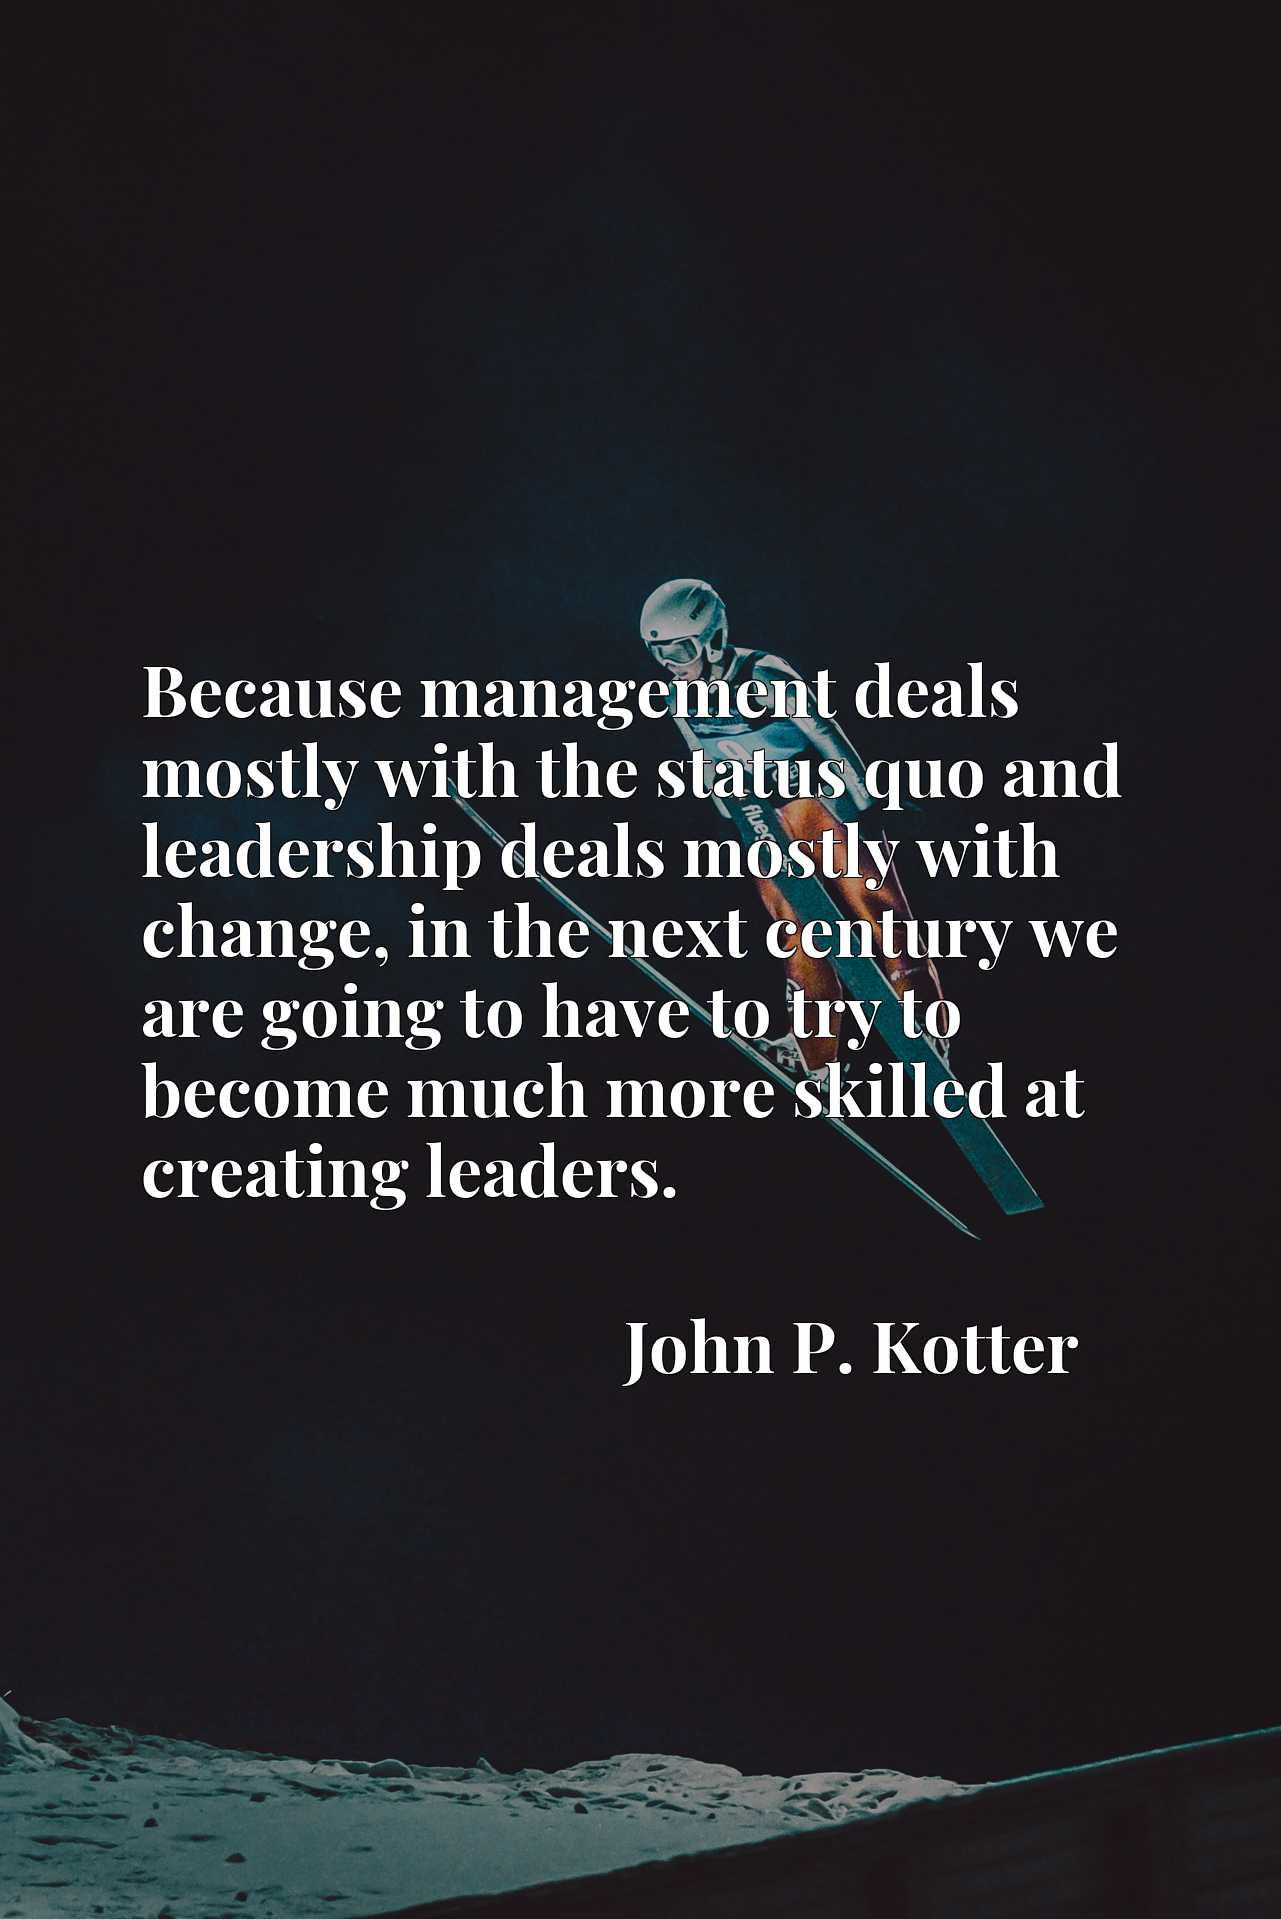 Because management deals mostly with the status quo and leadership deals mostly with change, in the next century we are going to have to try to become much more skilled at creating leaders.